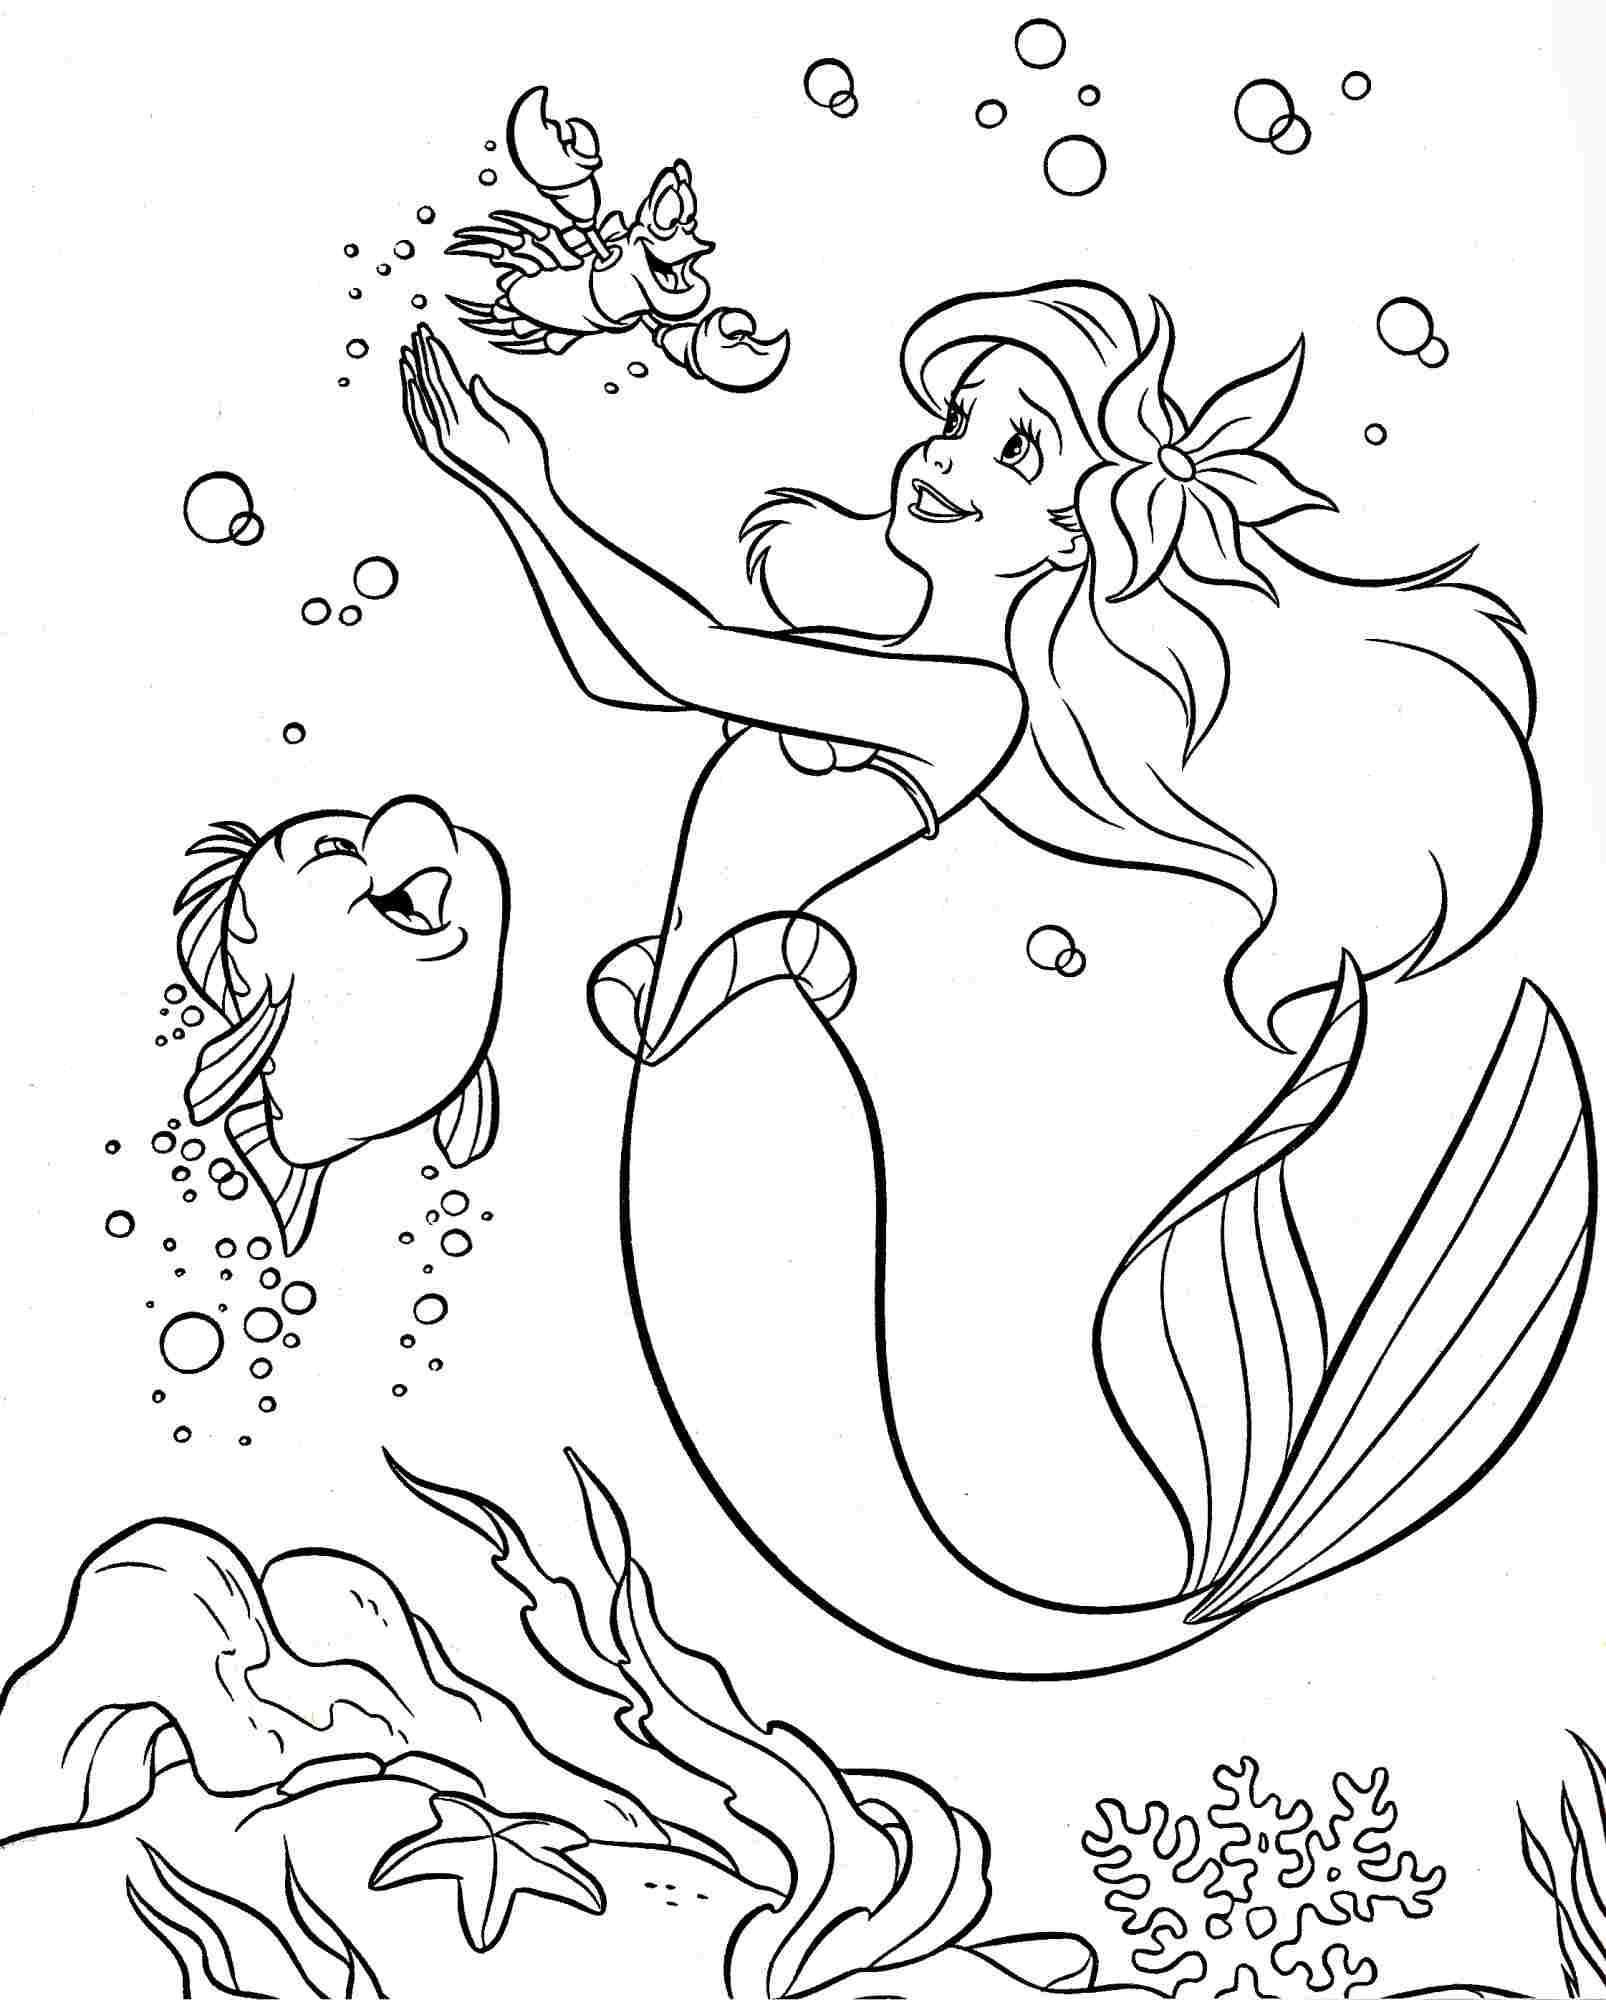 Colouring Pages Coloring Pages Disney Princess Little Mermaid Ariel For Kids Free Printable For Kids Girls Kleurplaten Disney Kleurplaten Frozen Kleurplaten